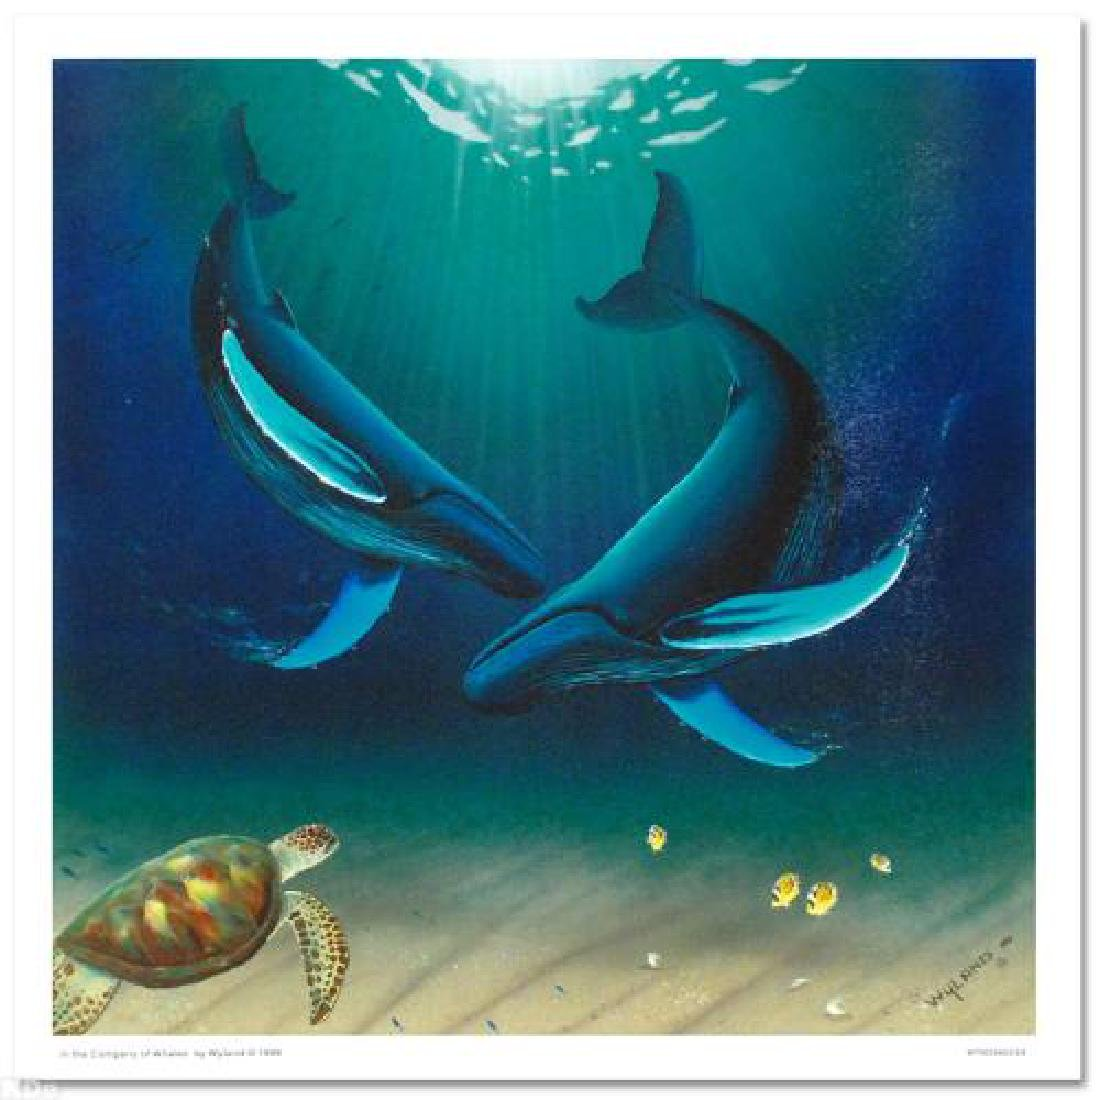 In the Company of Whales LIMITED EDITION Giclee on